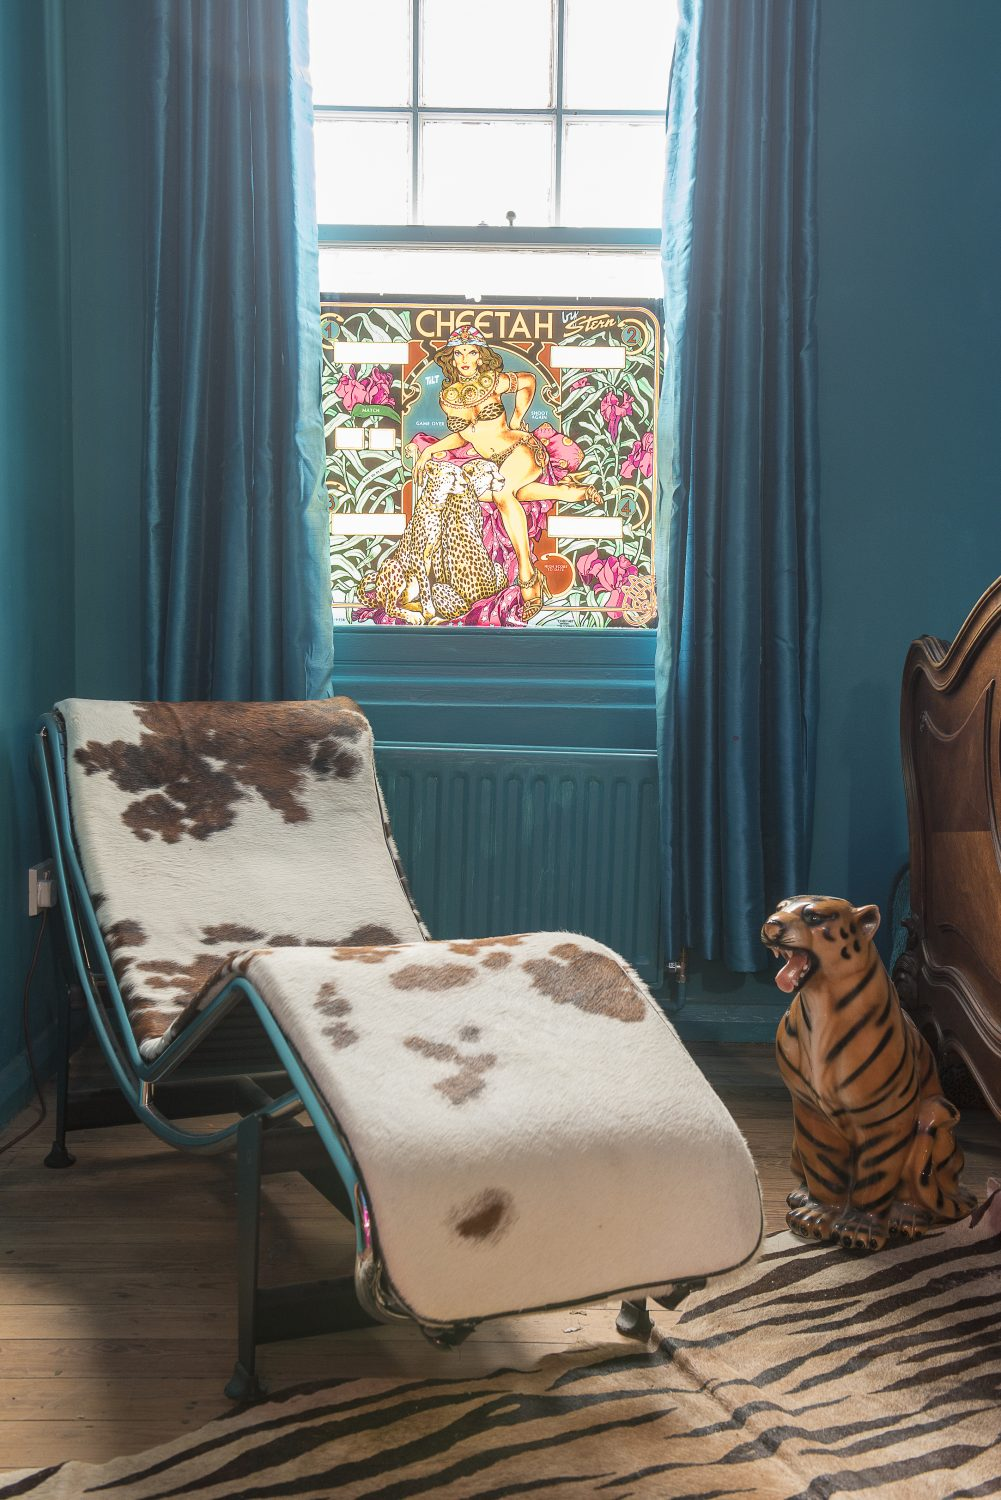 The bedroom's curtains perfectly match the teal used to paint the windows, radiator and walls